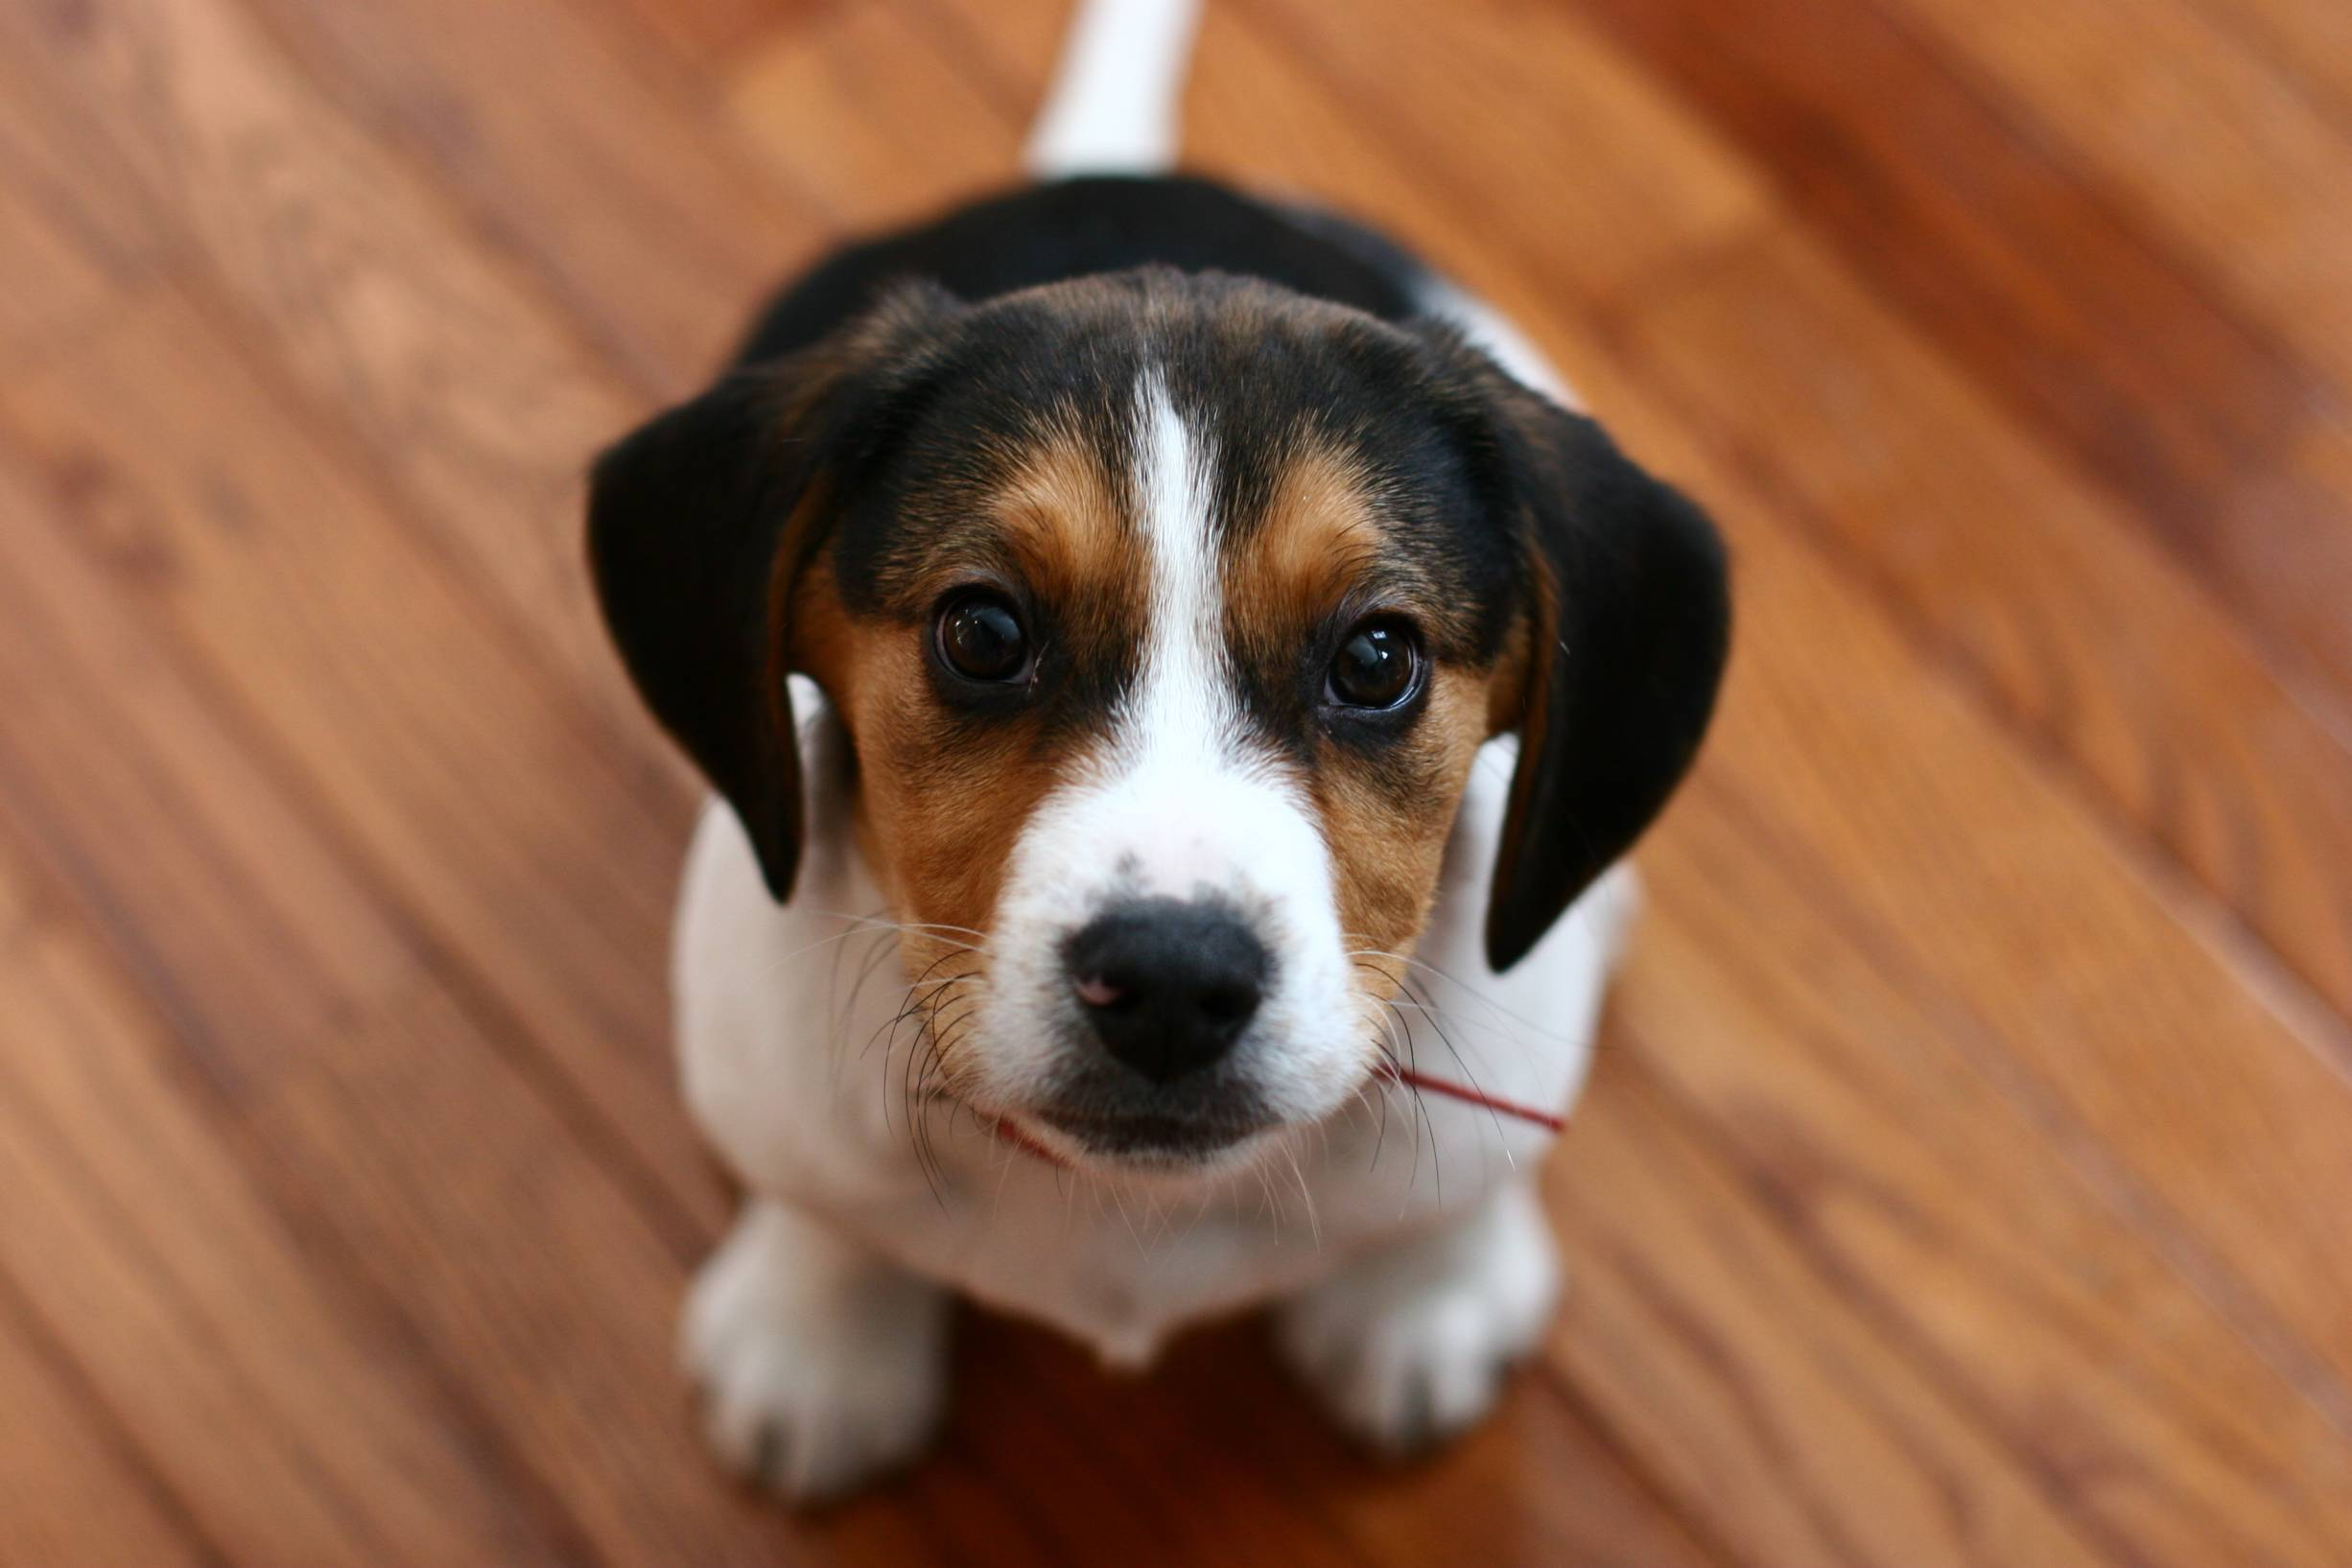 Baby Animal Beagle Cute Muzzle Puppy 2452x1635